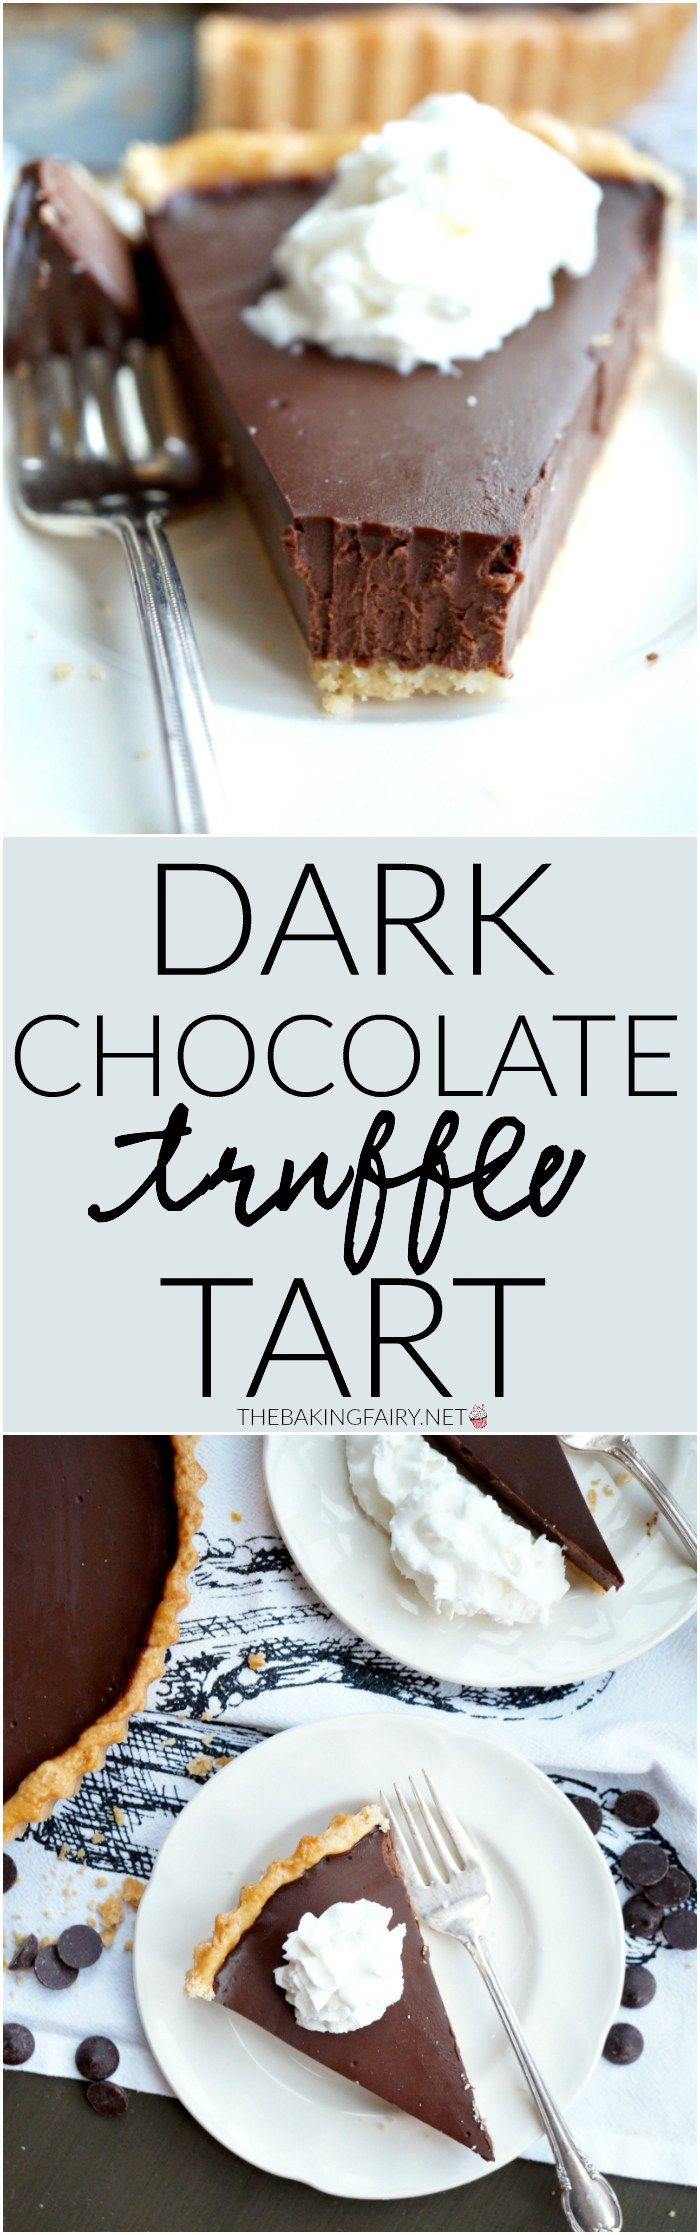 This Dark Chocolate Truffle Tart is the perfect comforting winter dessert. The filling tastes exactly like a creamy truffle! Sponsored by Dunkin' Donuts. #DunkinAtHome #BakerySeries #ad